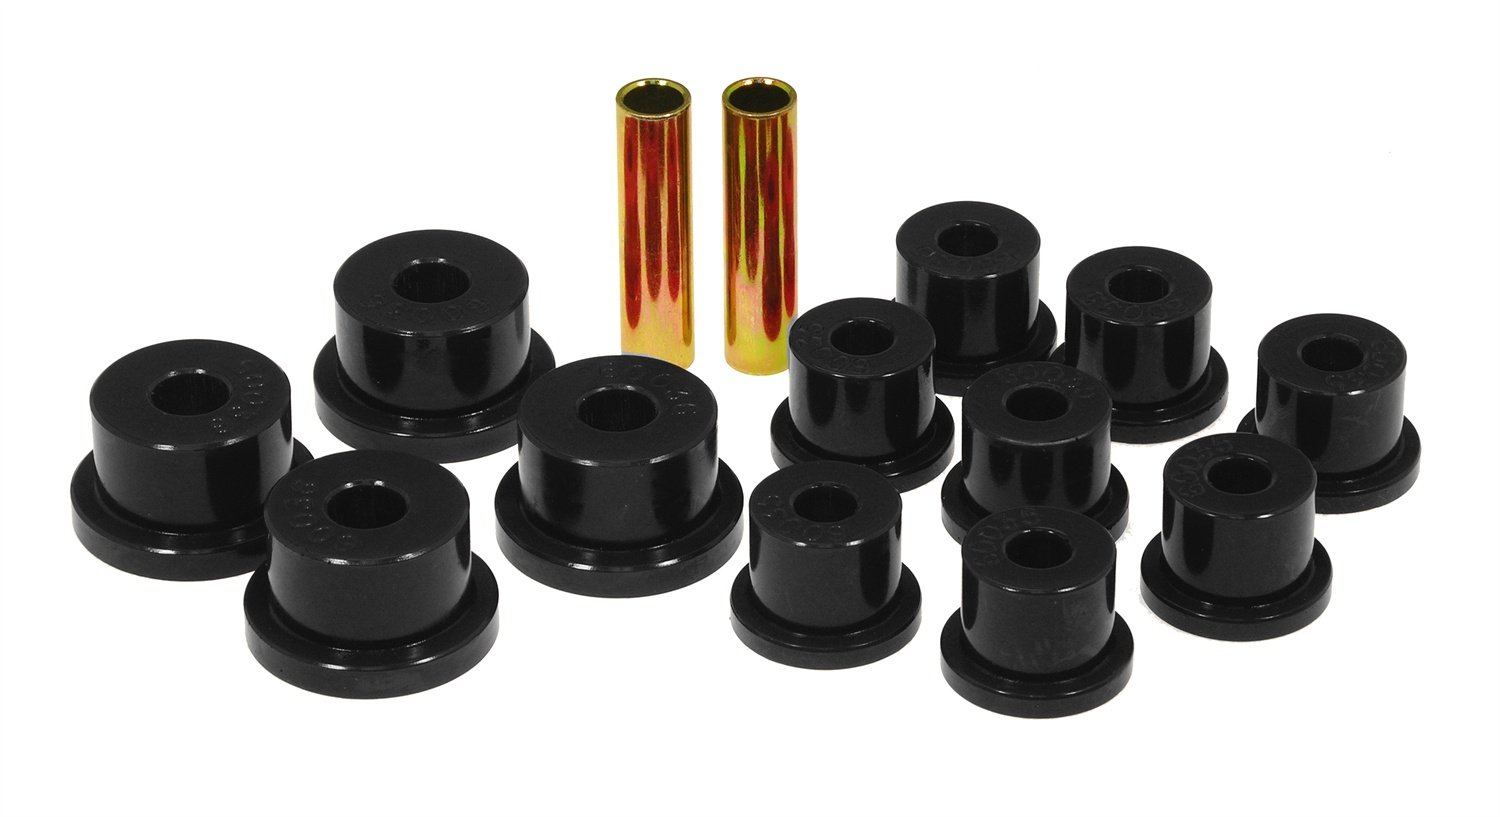 Prothane 17-1001-BL Black Spring Eye and O.E.M. Shackle Bushing Kit